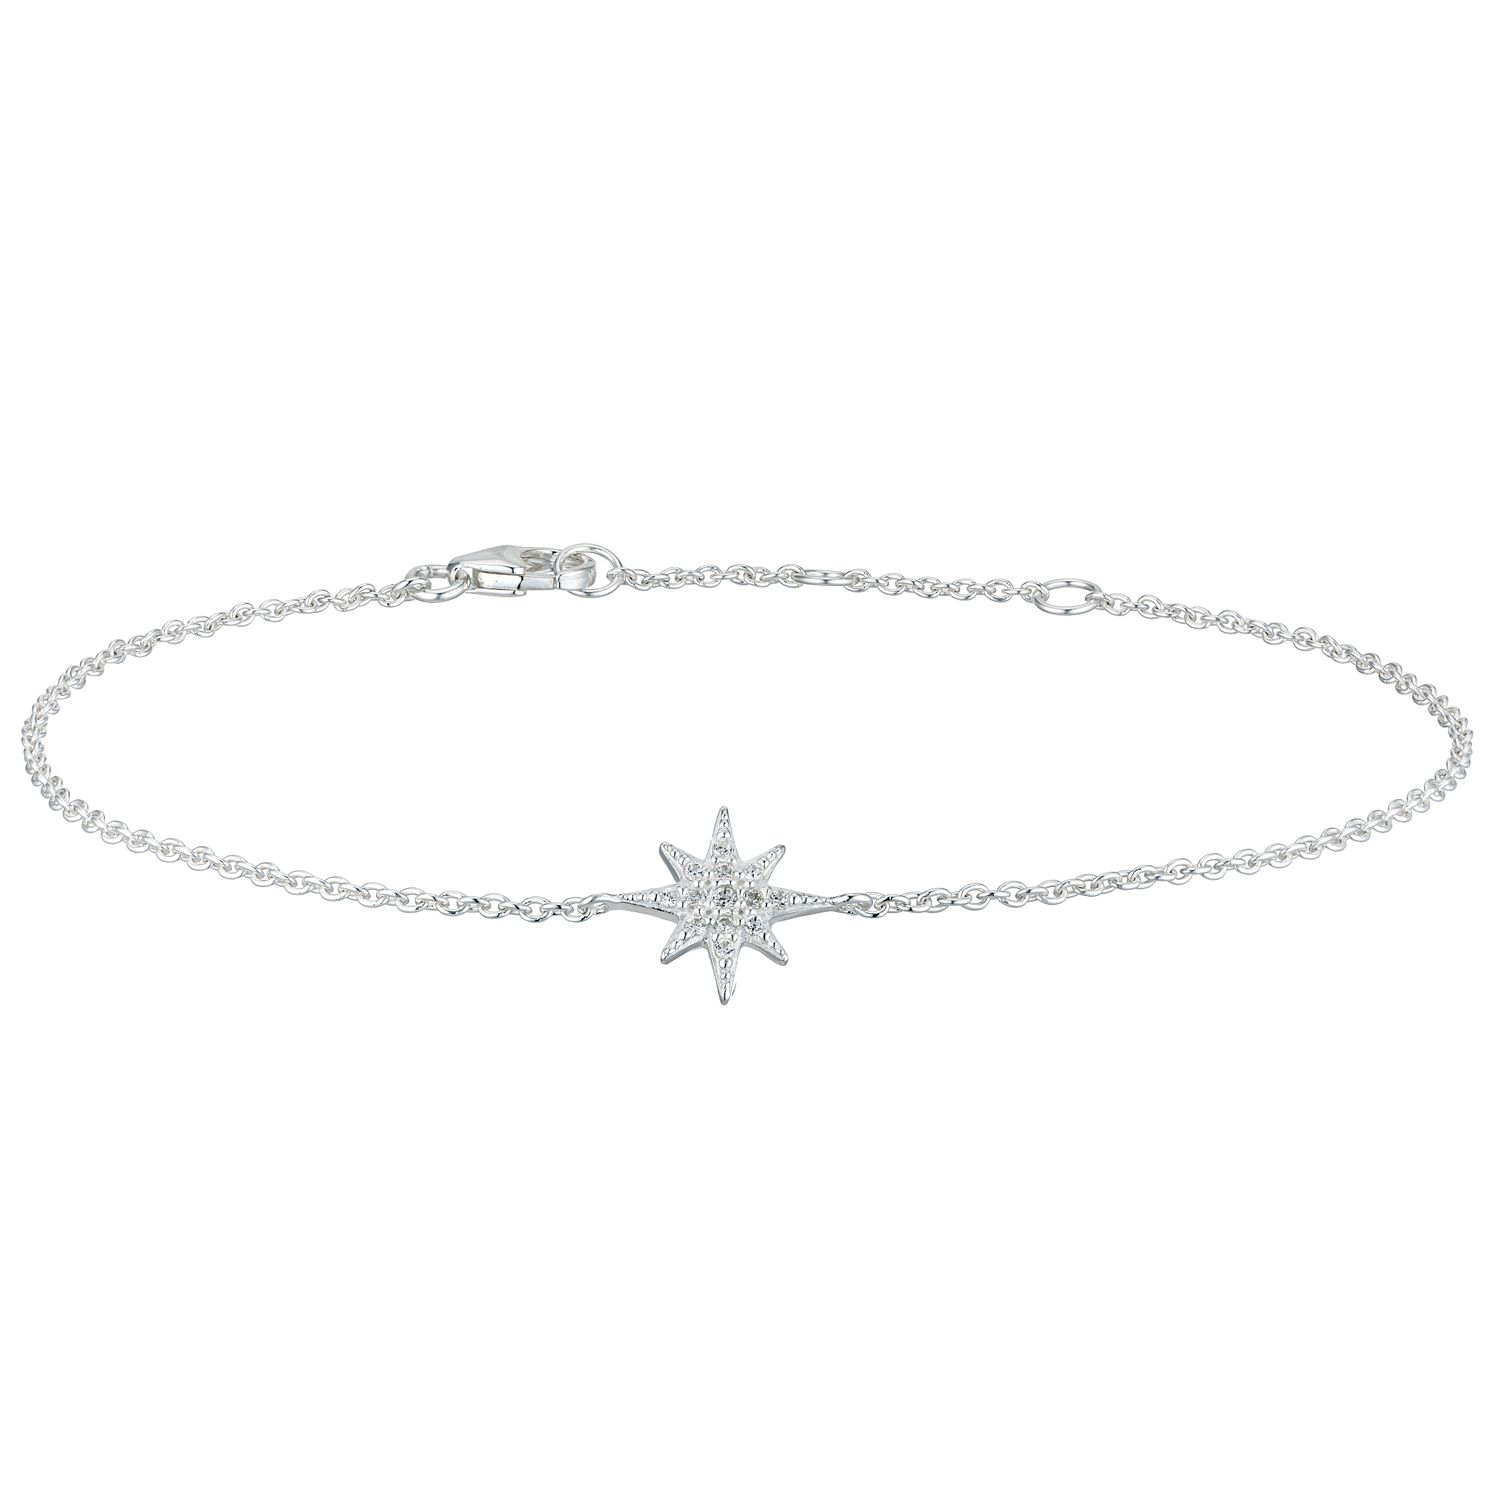 Silver Cubic Zirconia Snowflake Bracelet - Product number 5705320